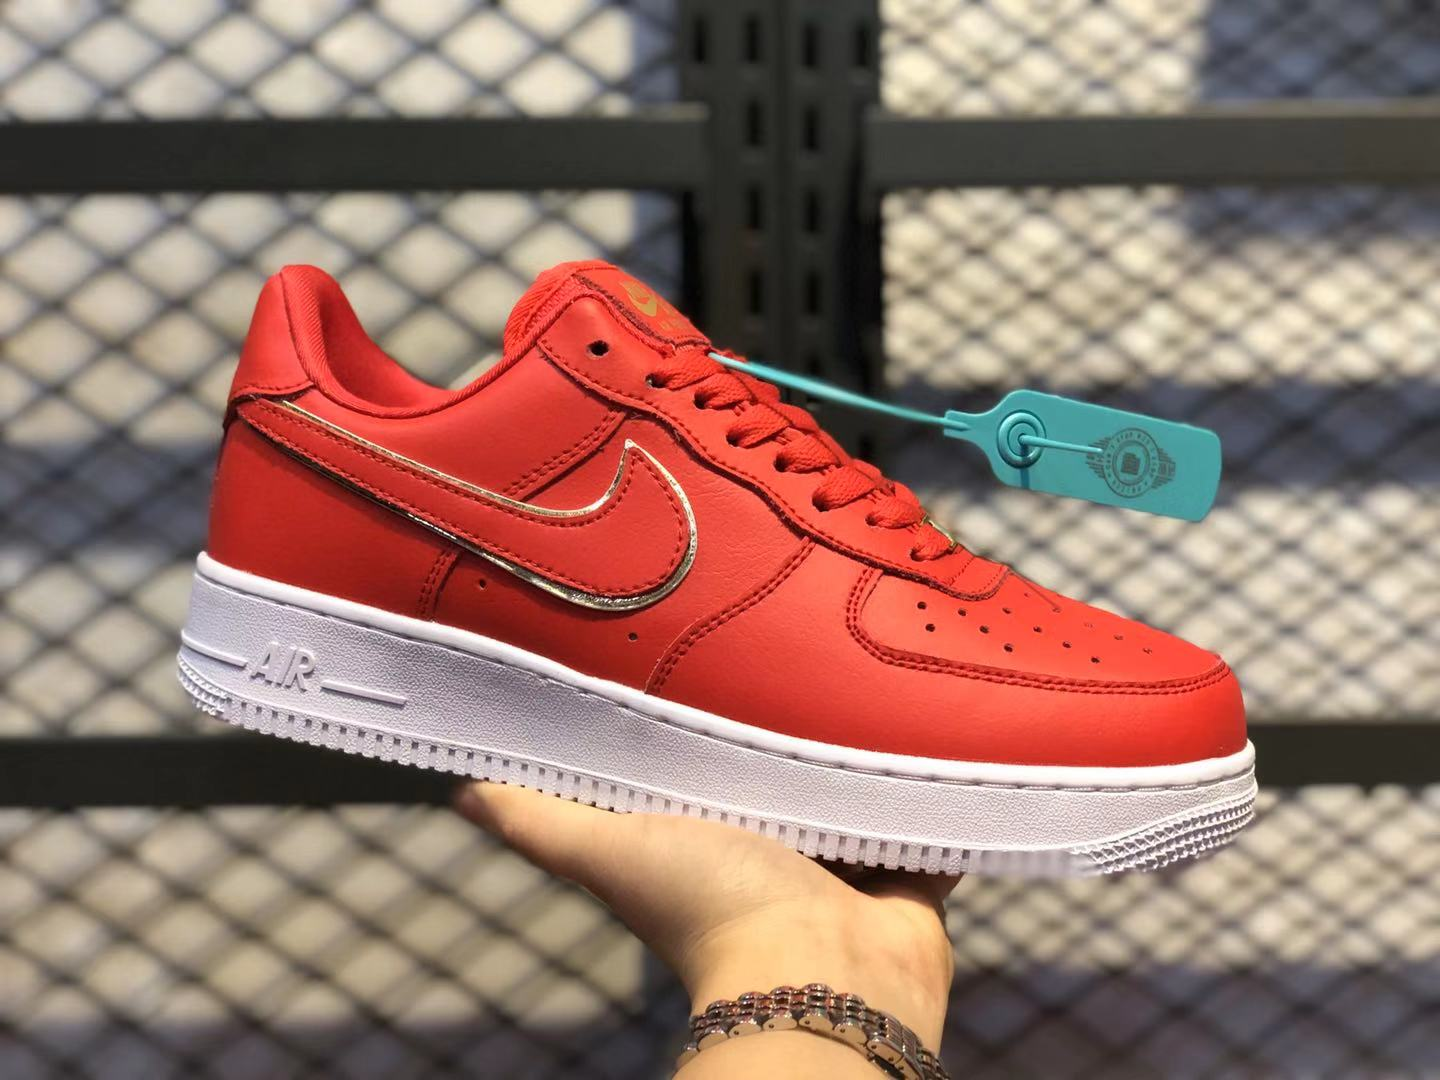 Nike Air Force 1 Low Red Gold Swoosh AO2132-602 Lightweight Sneakers On Sale